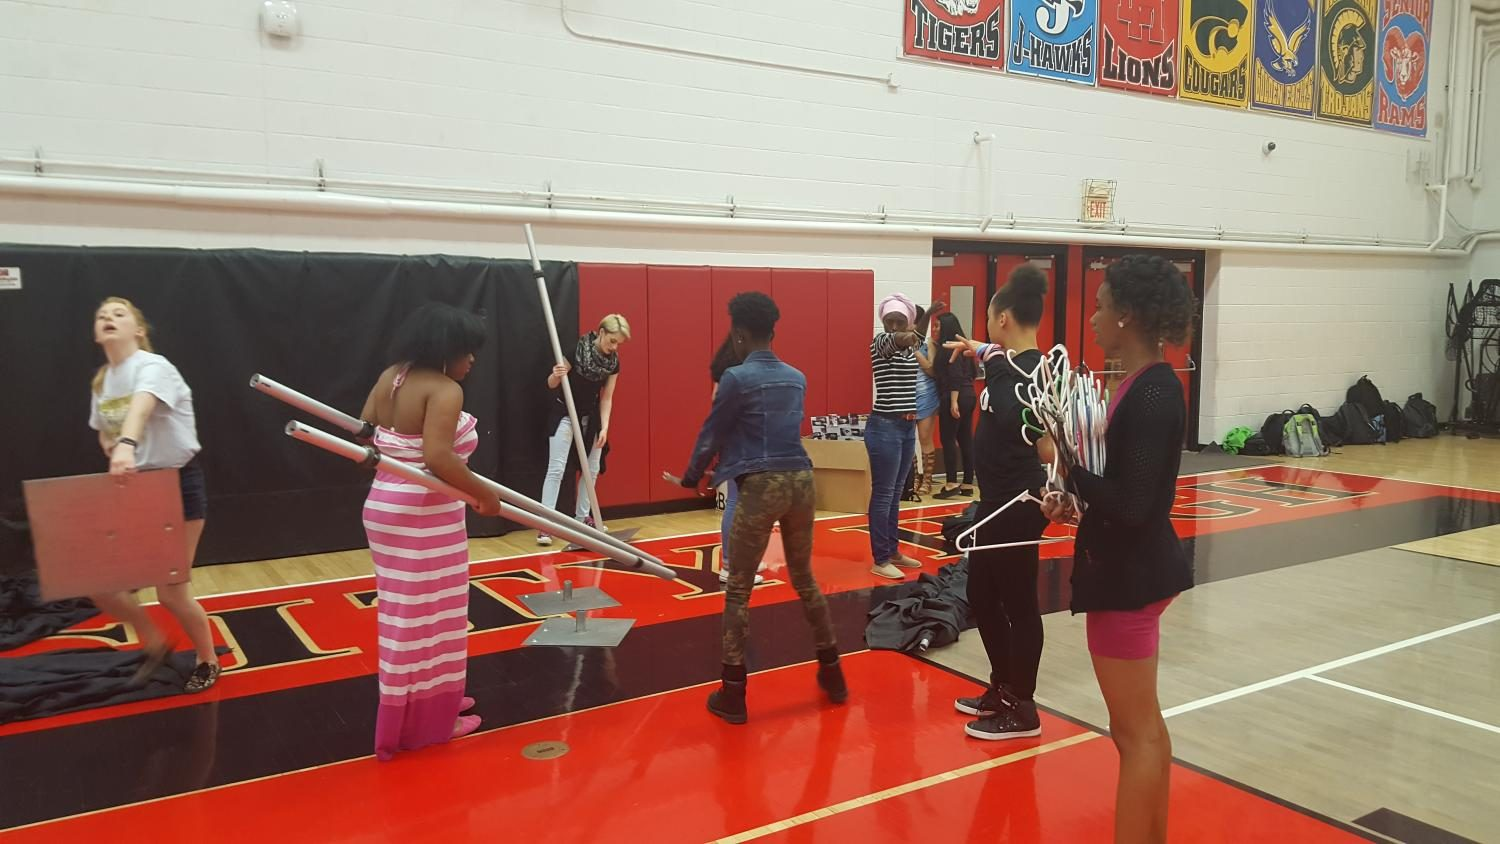 Fashion Class students begin setting up the runway.